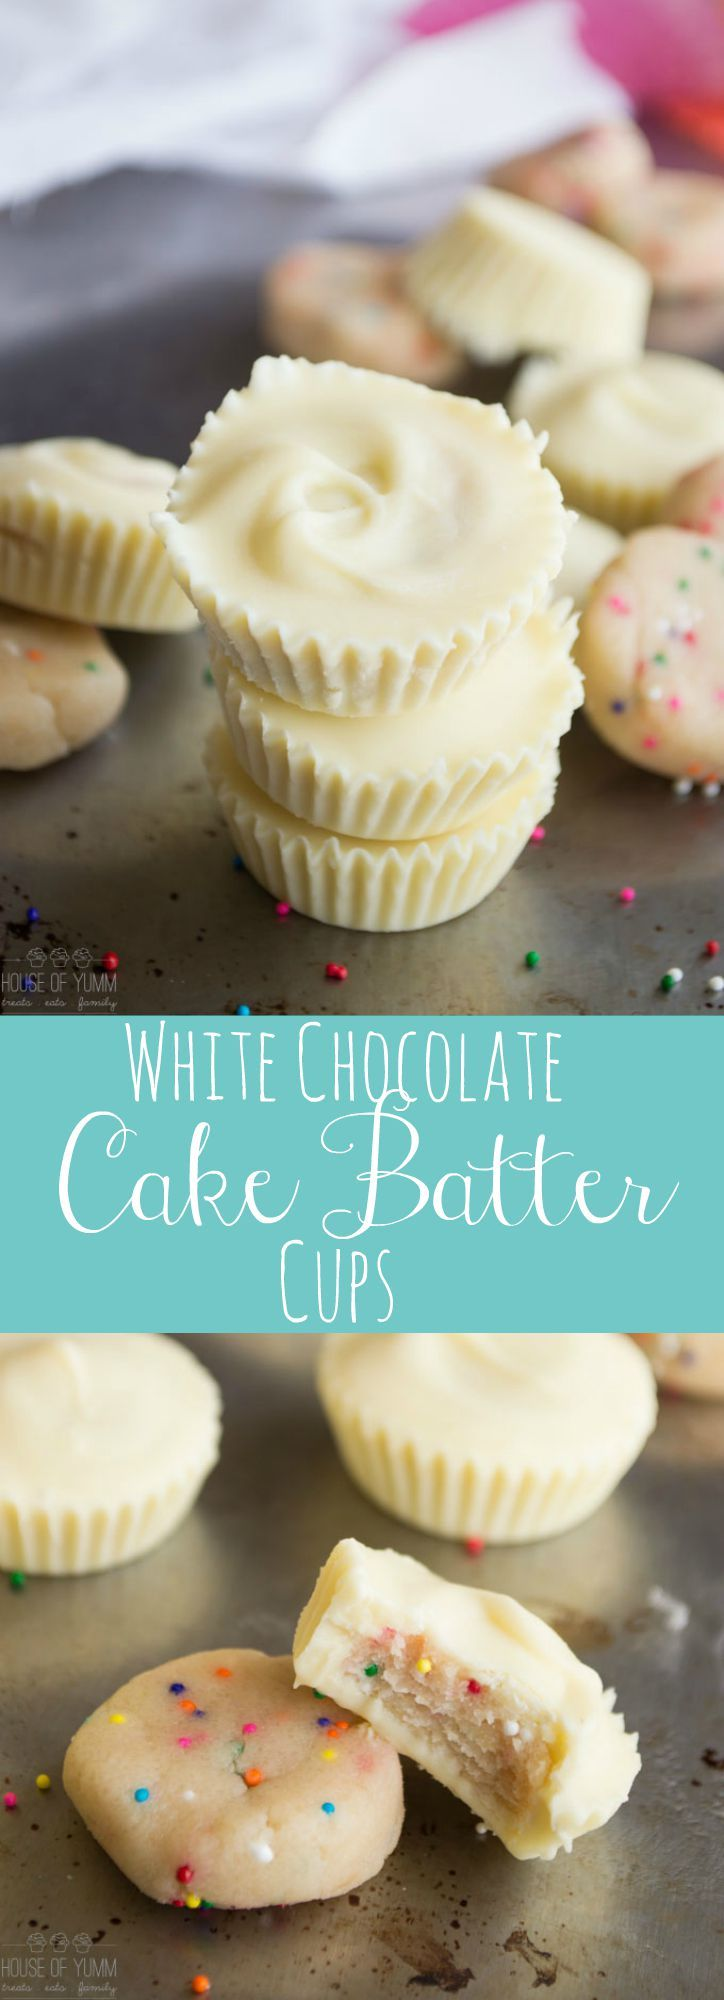 White chocolate cups filled with edible cake batter!